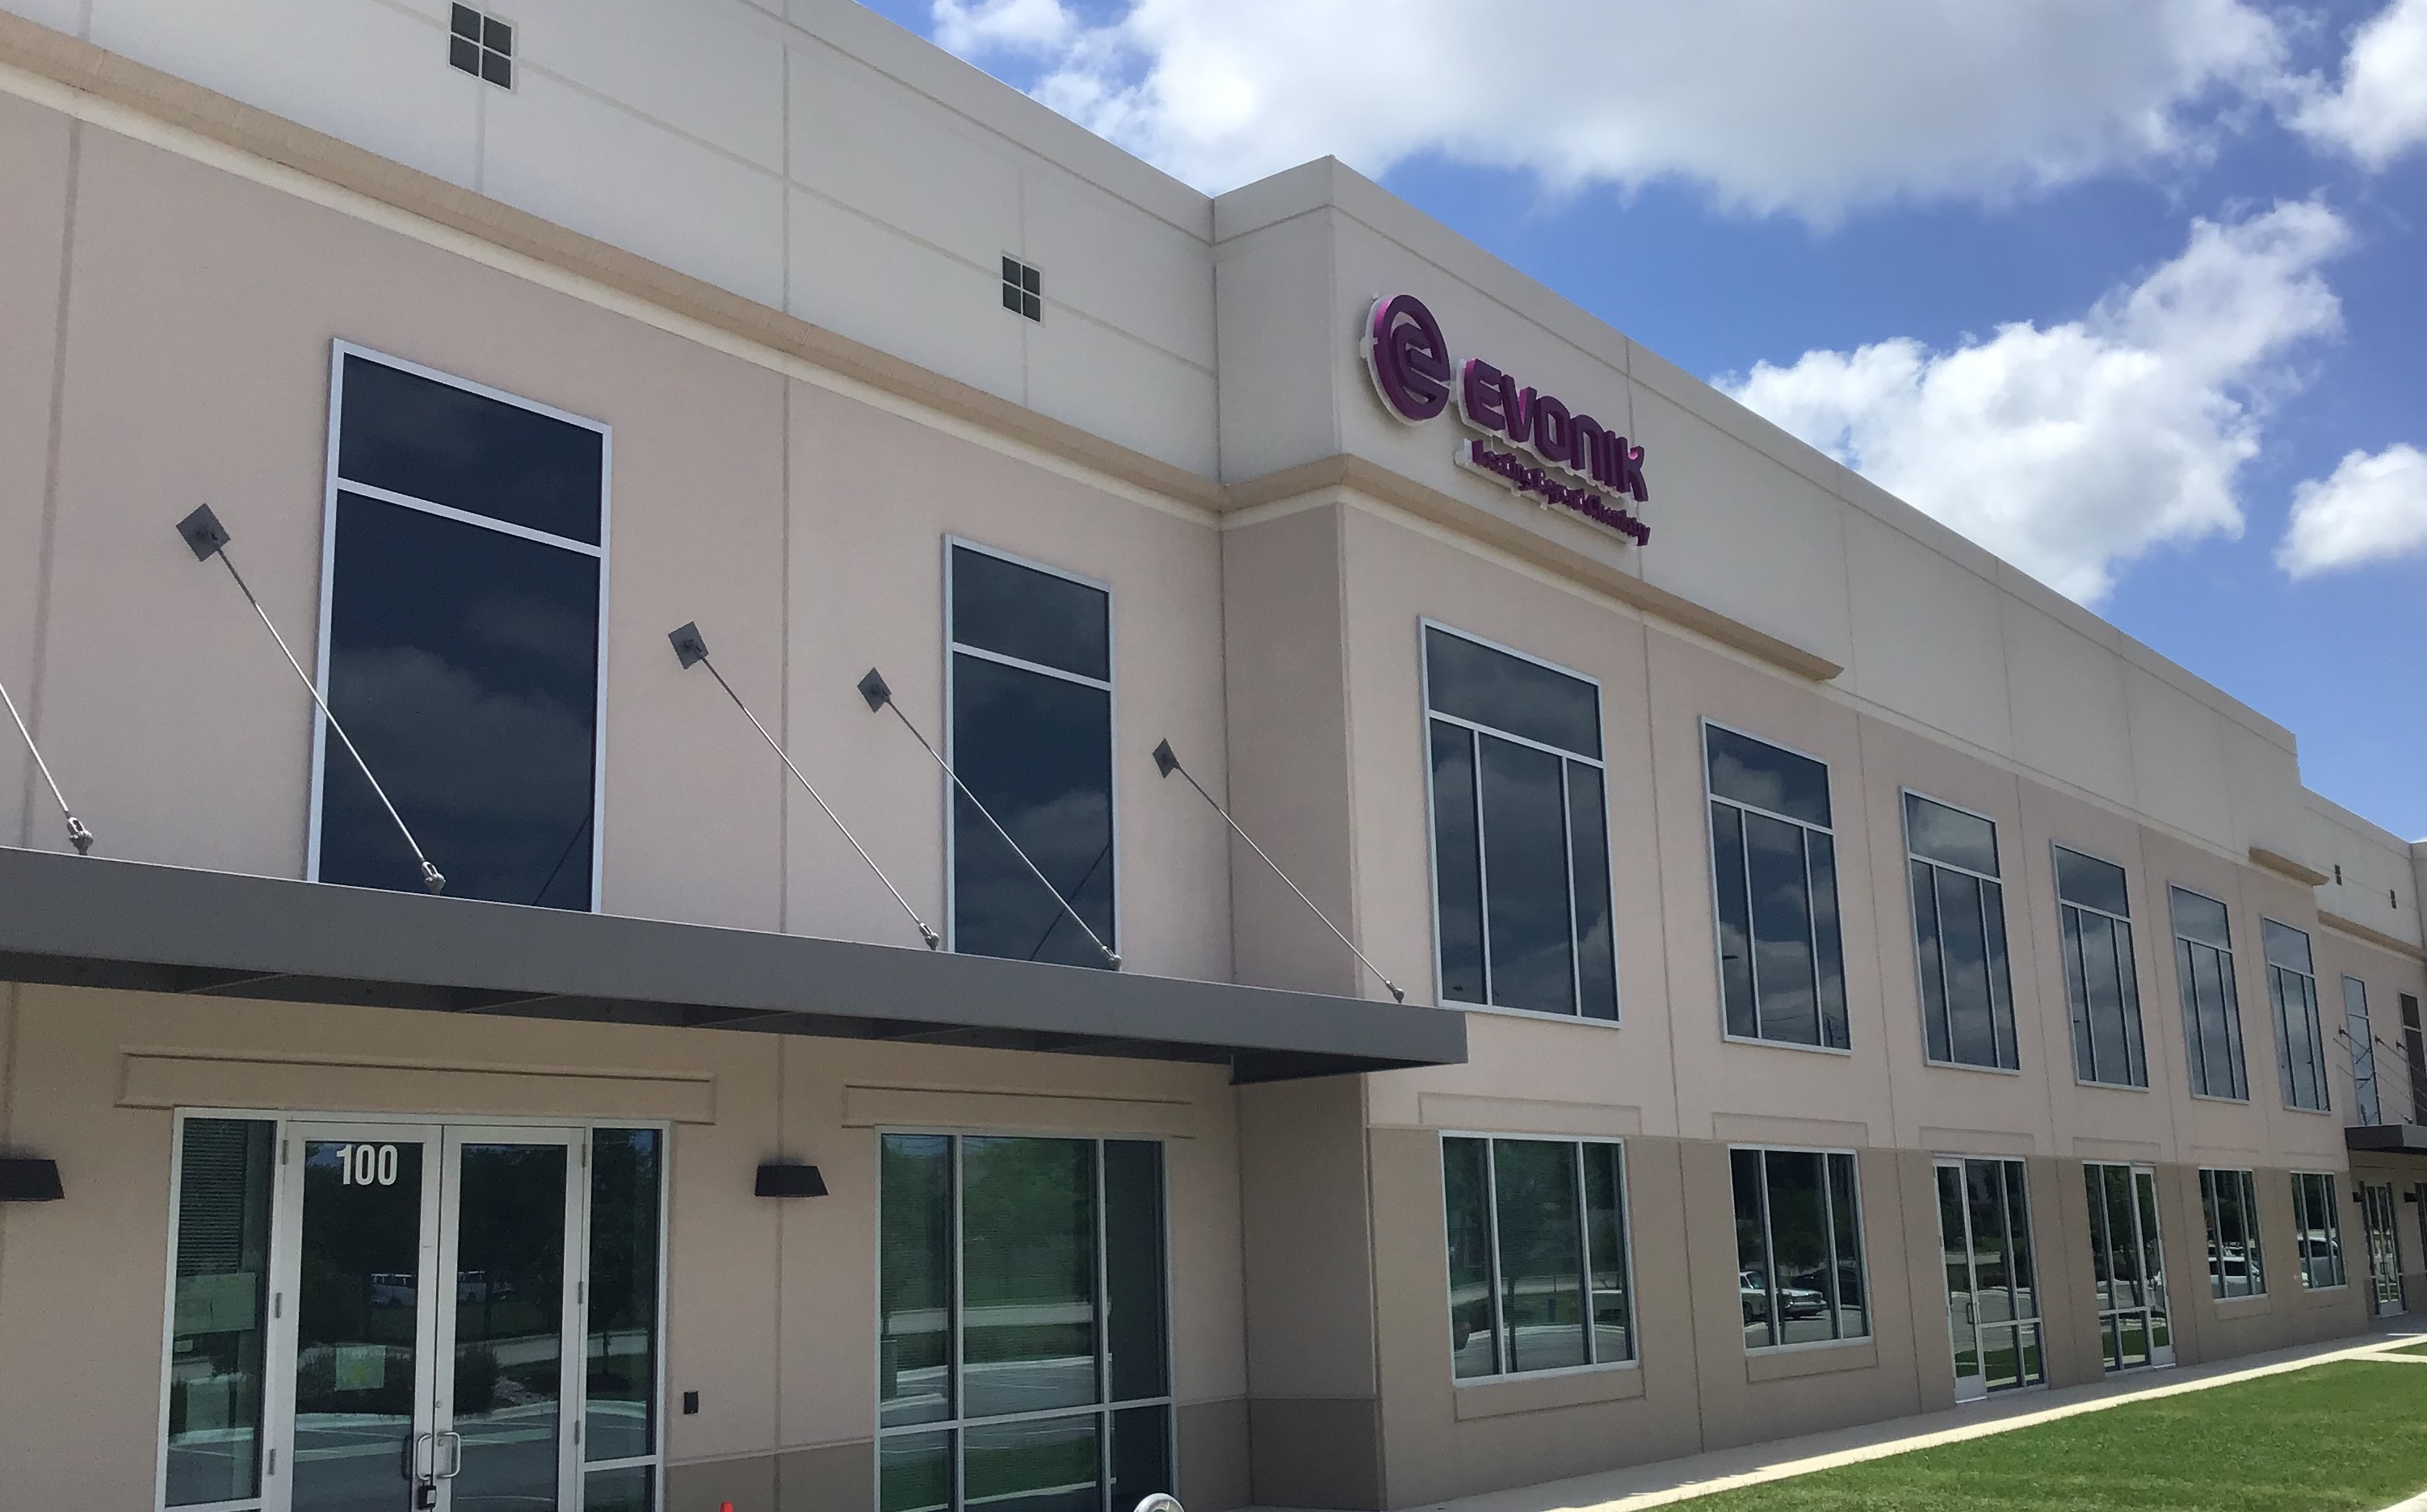 Evonik has opened its new facility in Texas (pictured) in order to develop new 3D printing materials. Photo via Evonik.